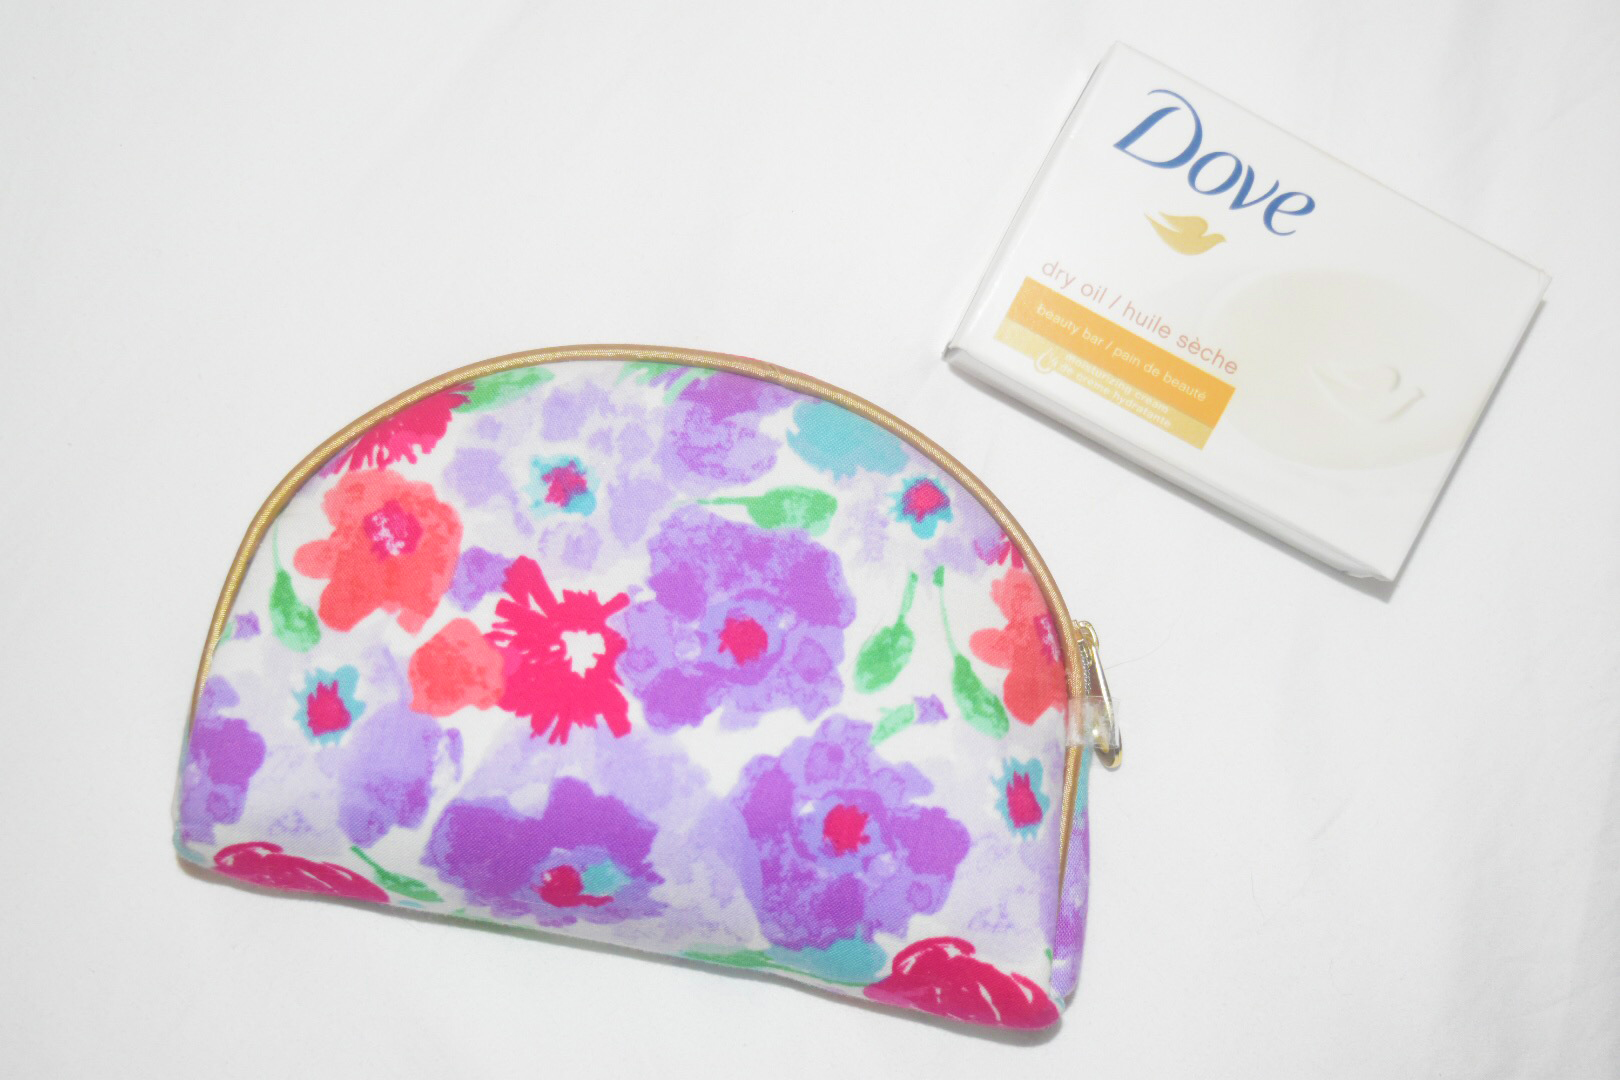 Getting Beach Ready With Dove